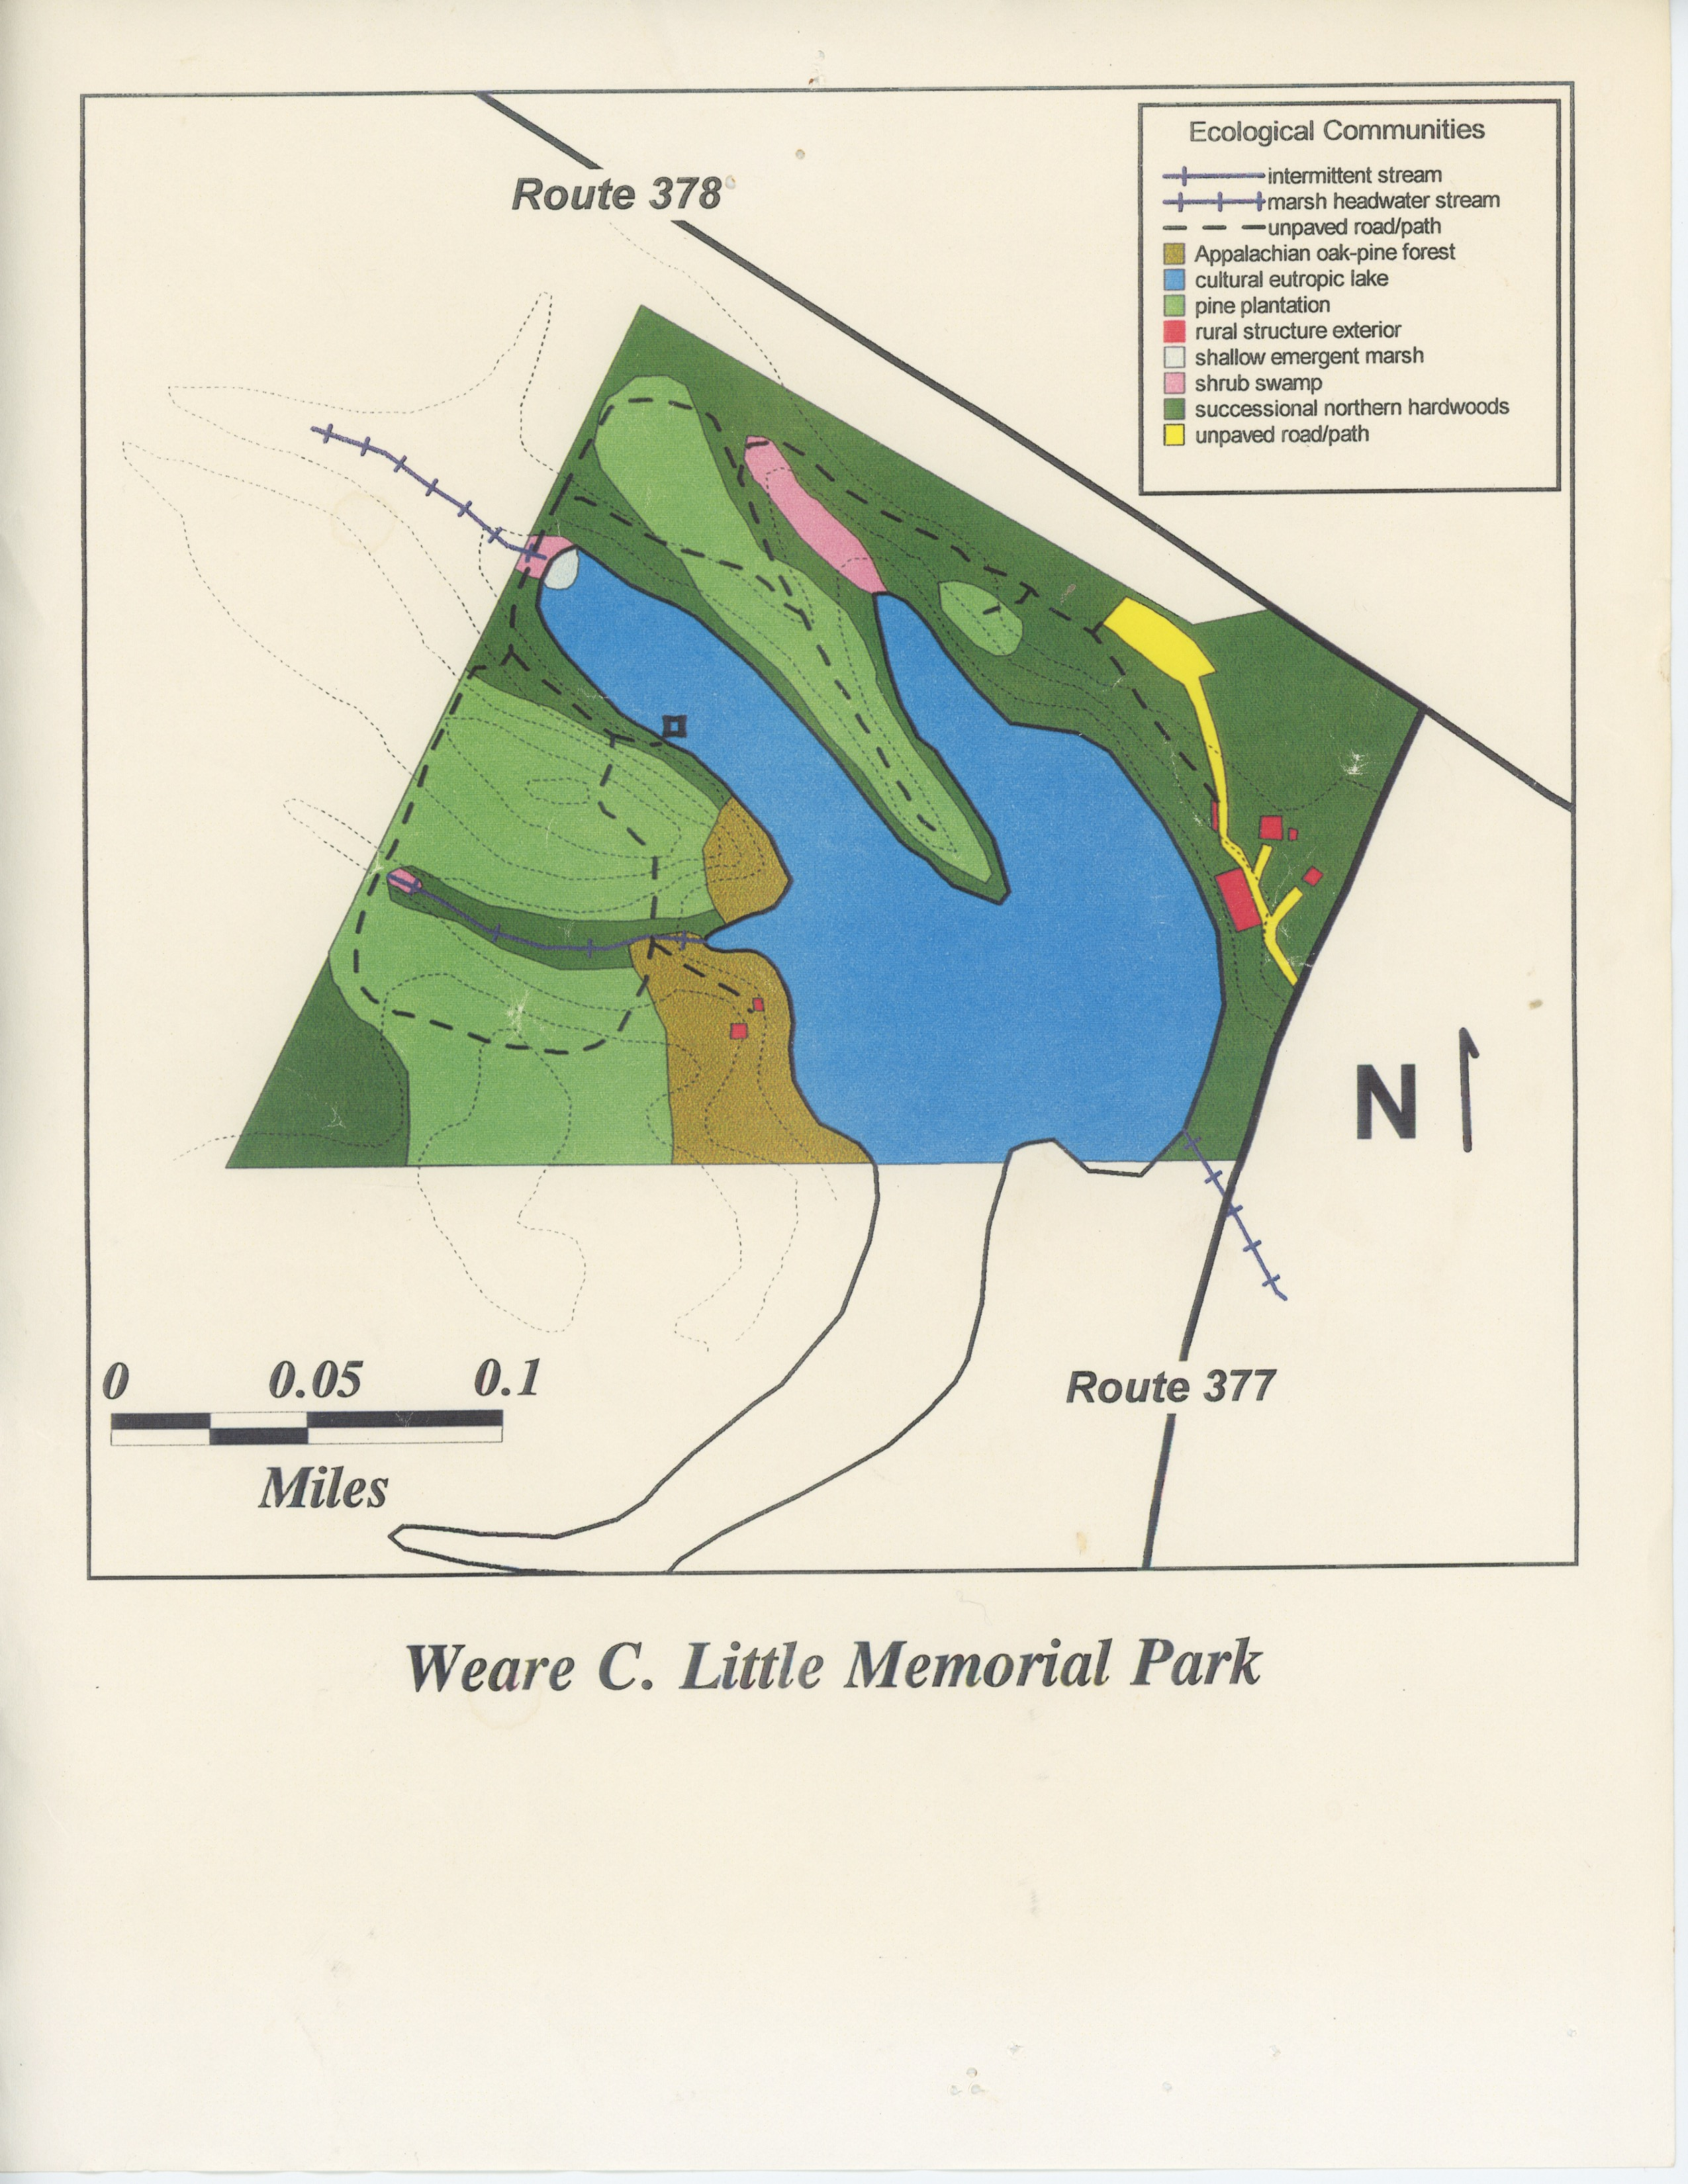 Map Ecological